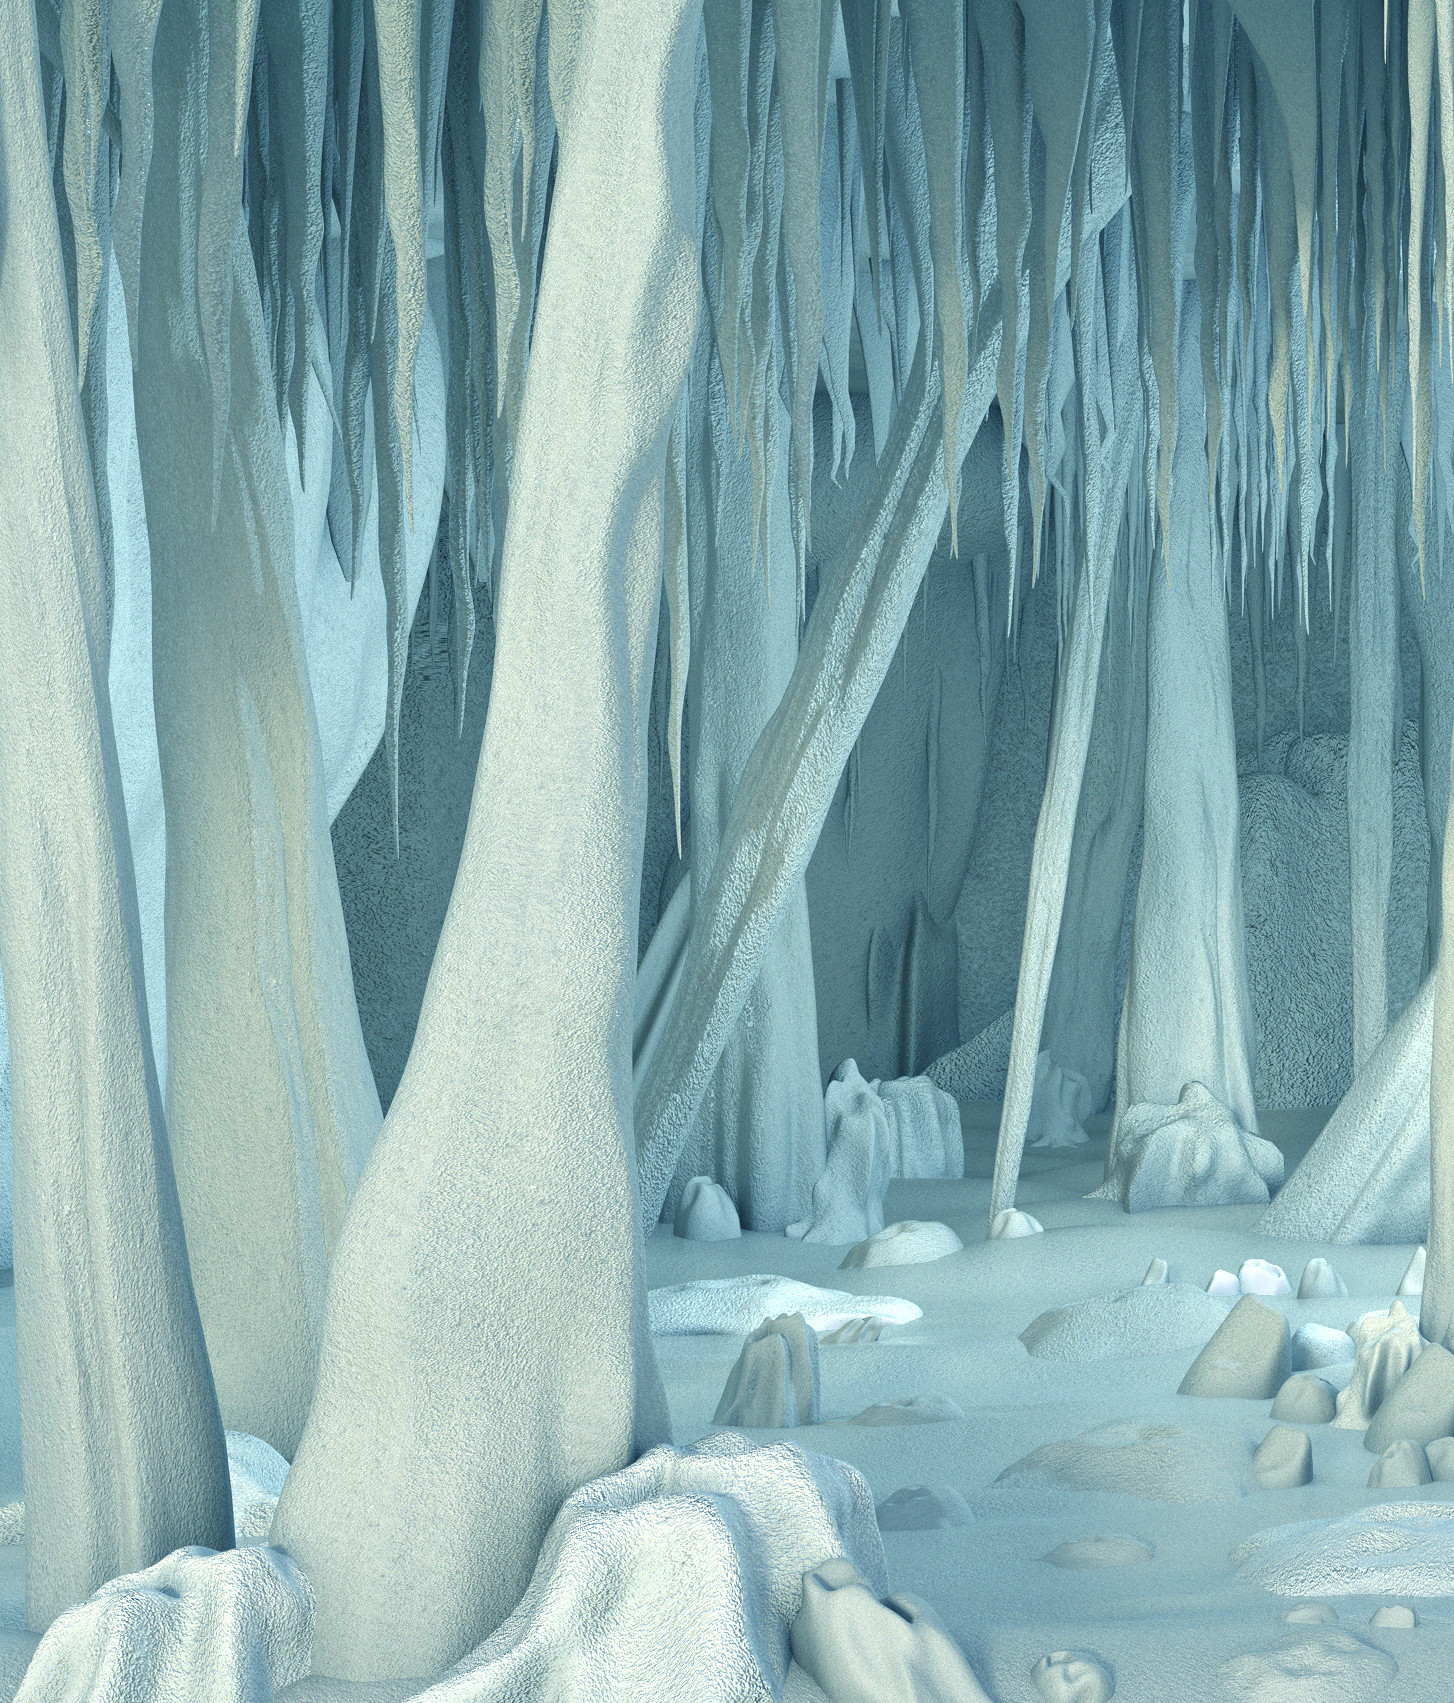 Marc mons icecave2